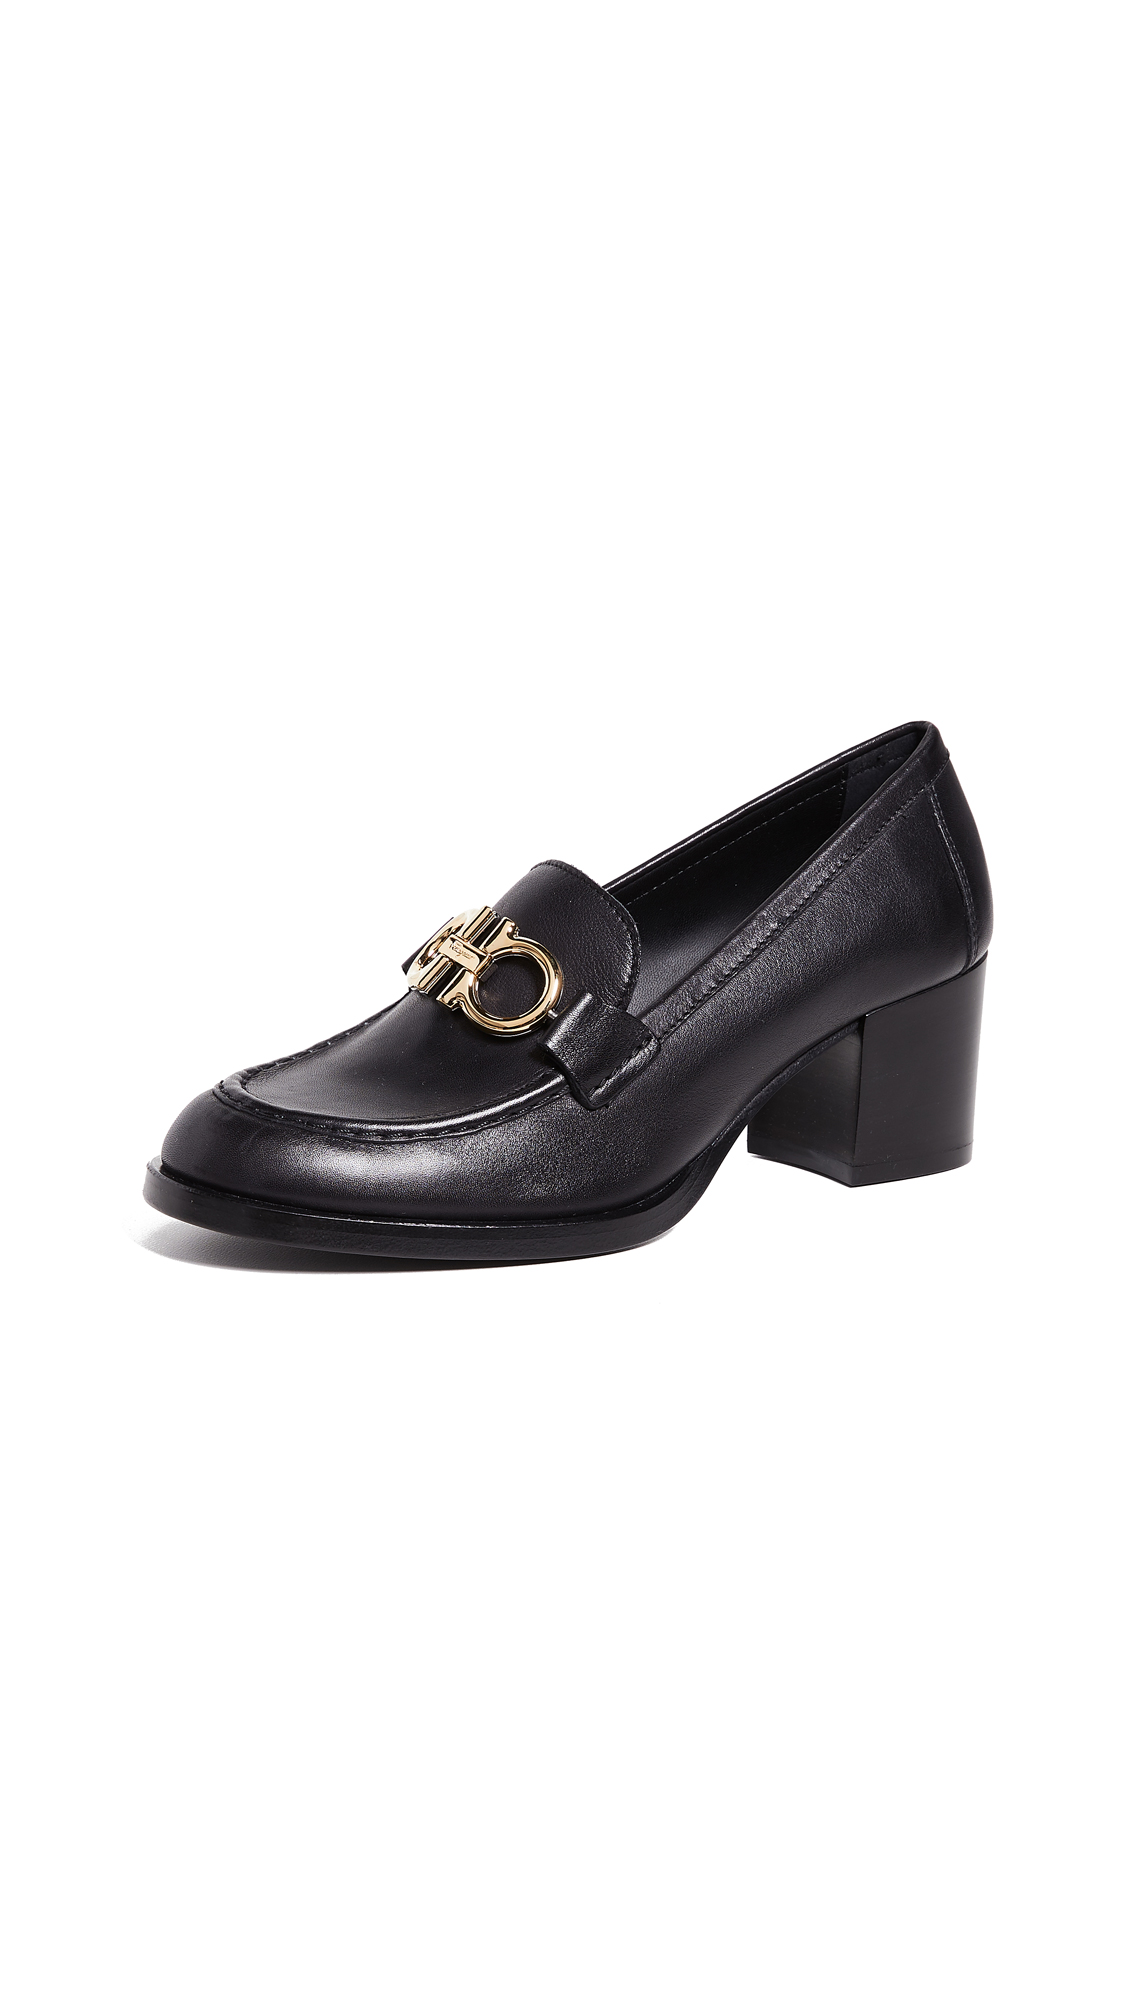 Salvatore Ferragamo Rolo 55mm Loafers - Nero